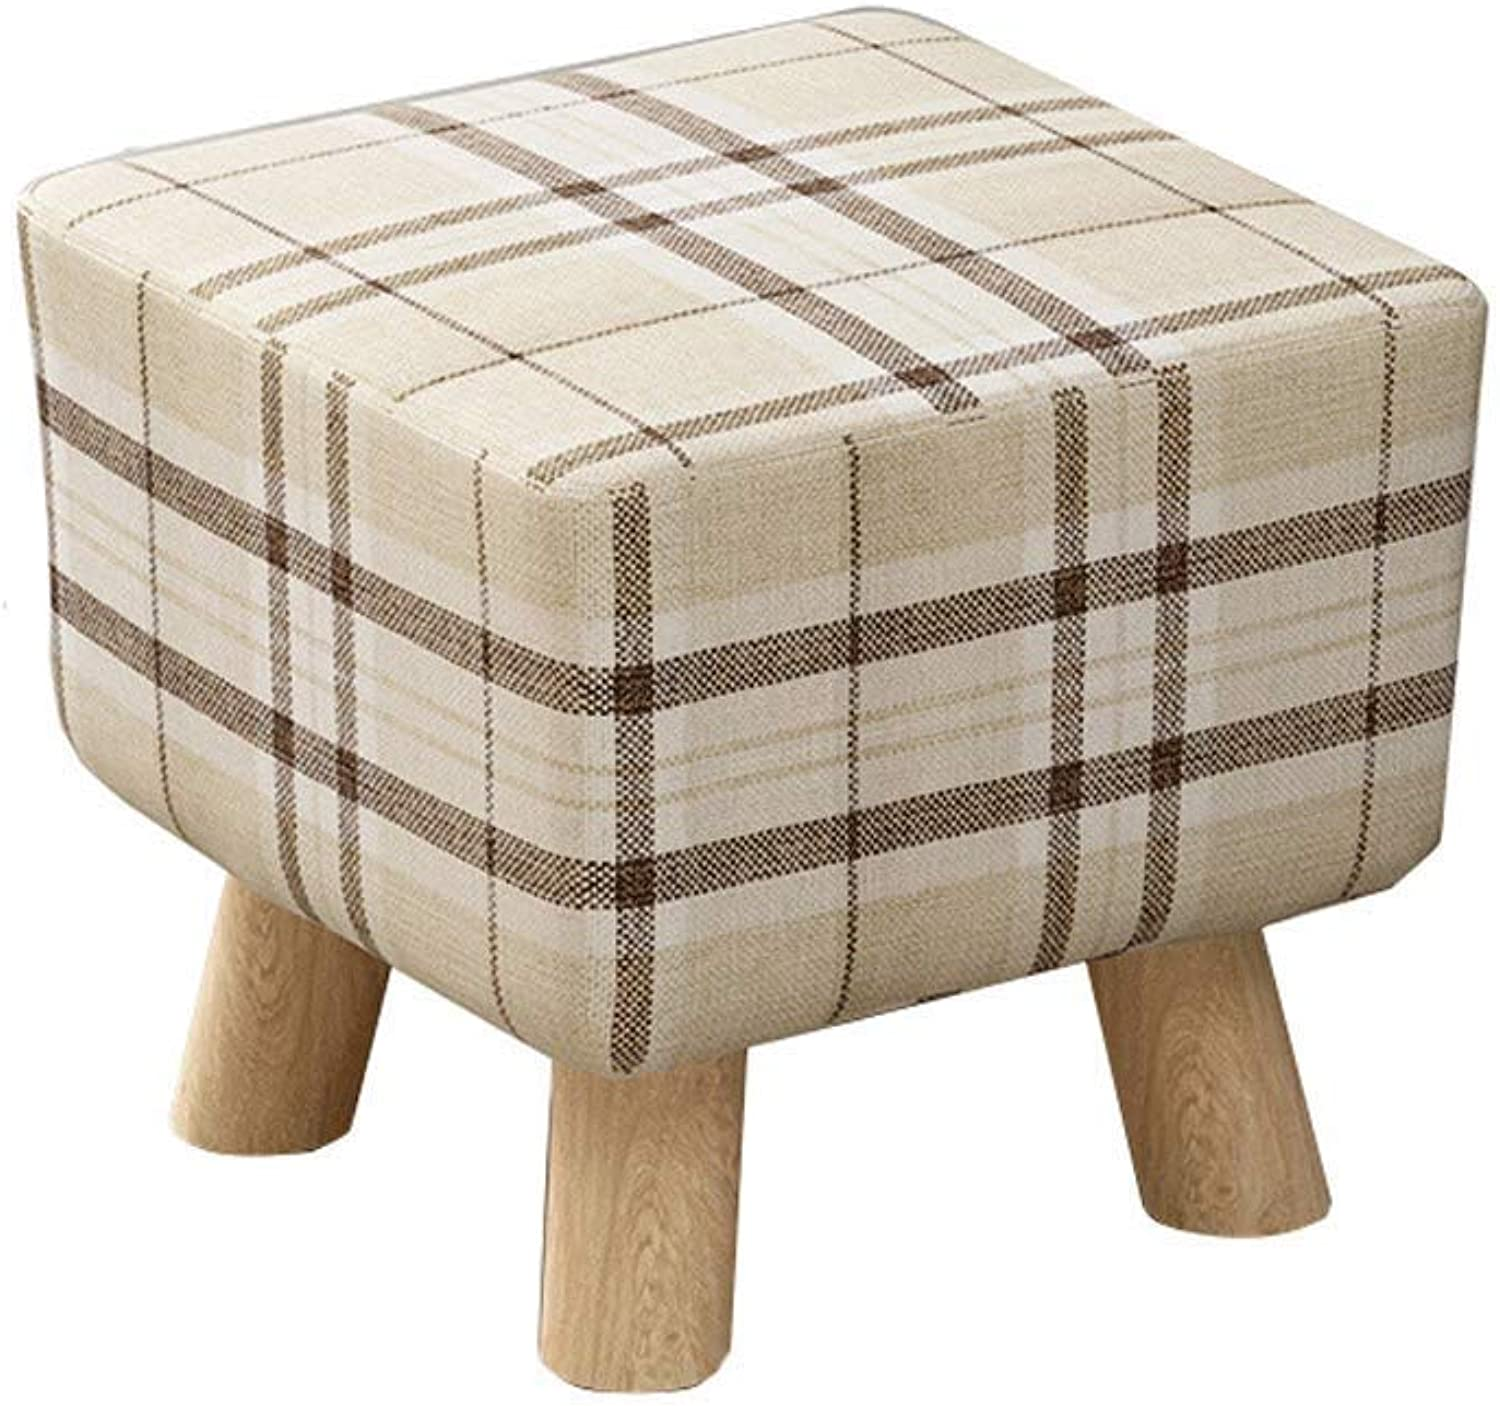 ZOUQILAI Stools Square Wooden Upholstered Footstool, Square Pouffe Single Seater and Removable Linen Cover (color   D)